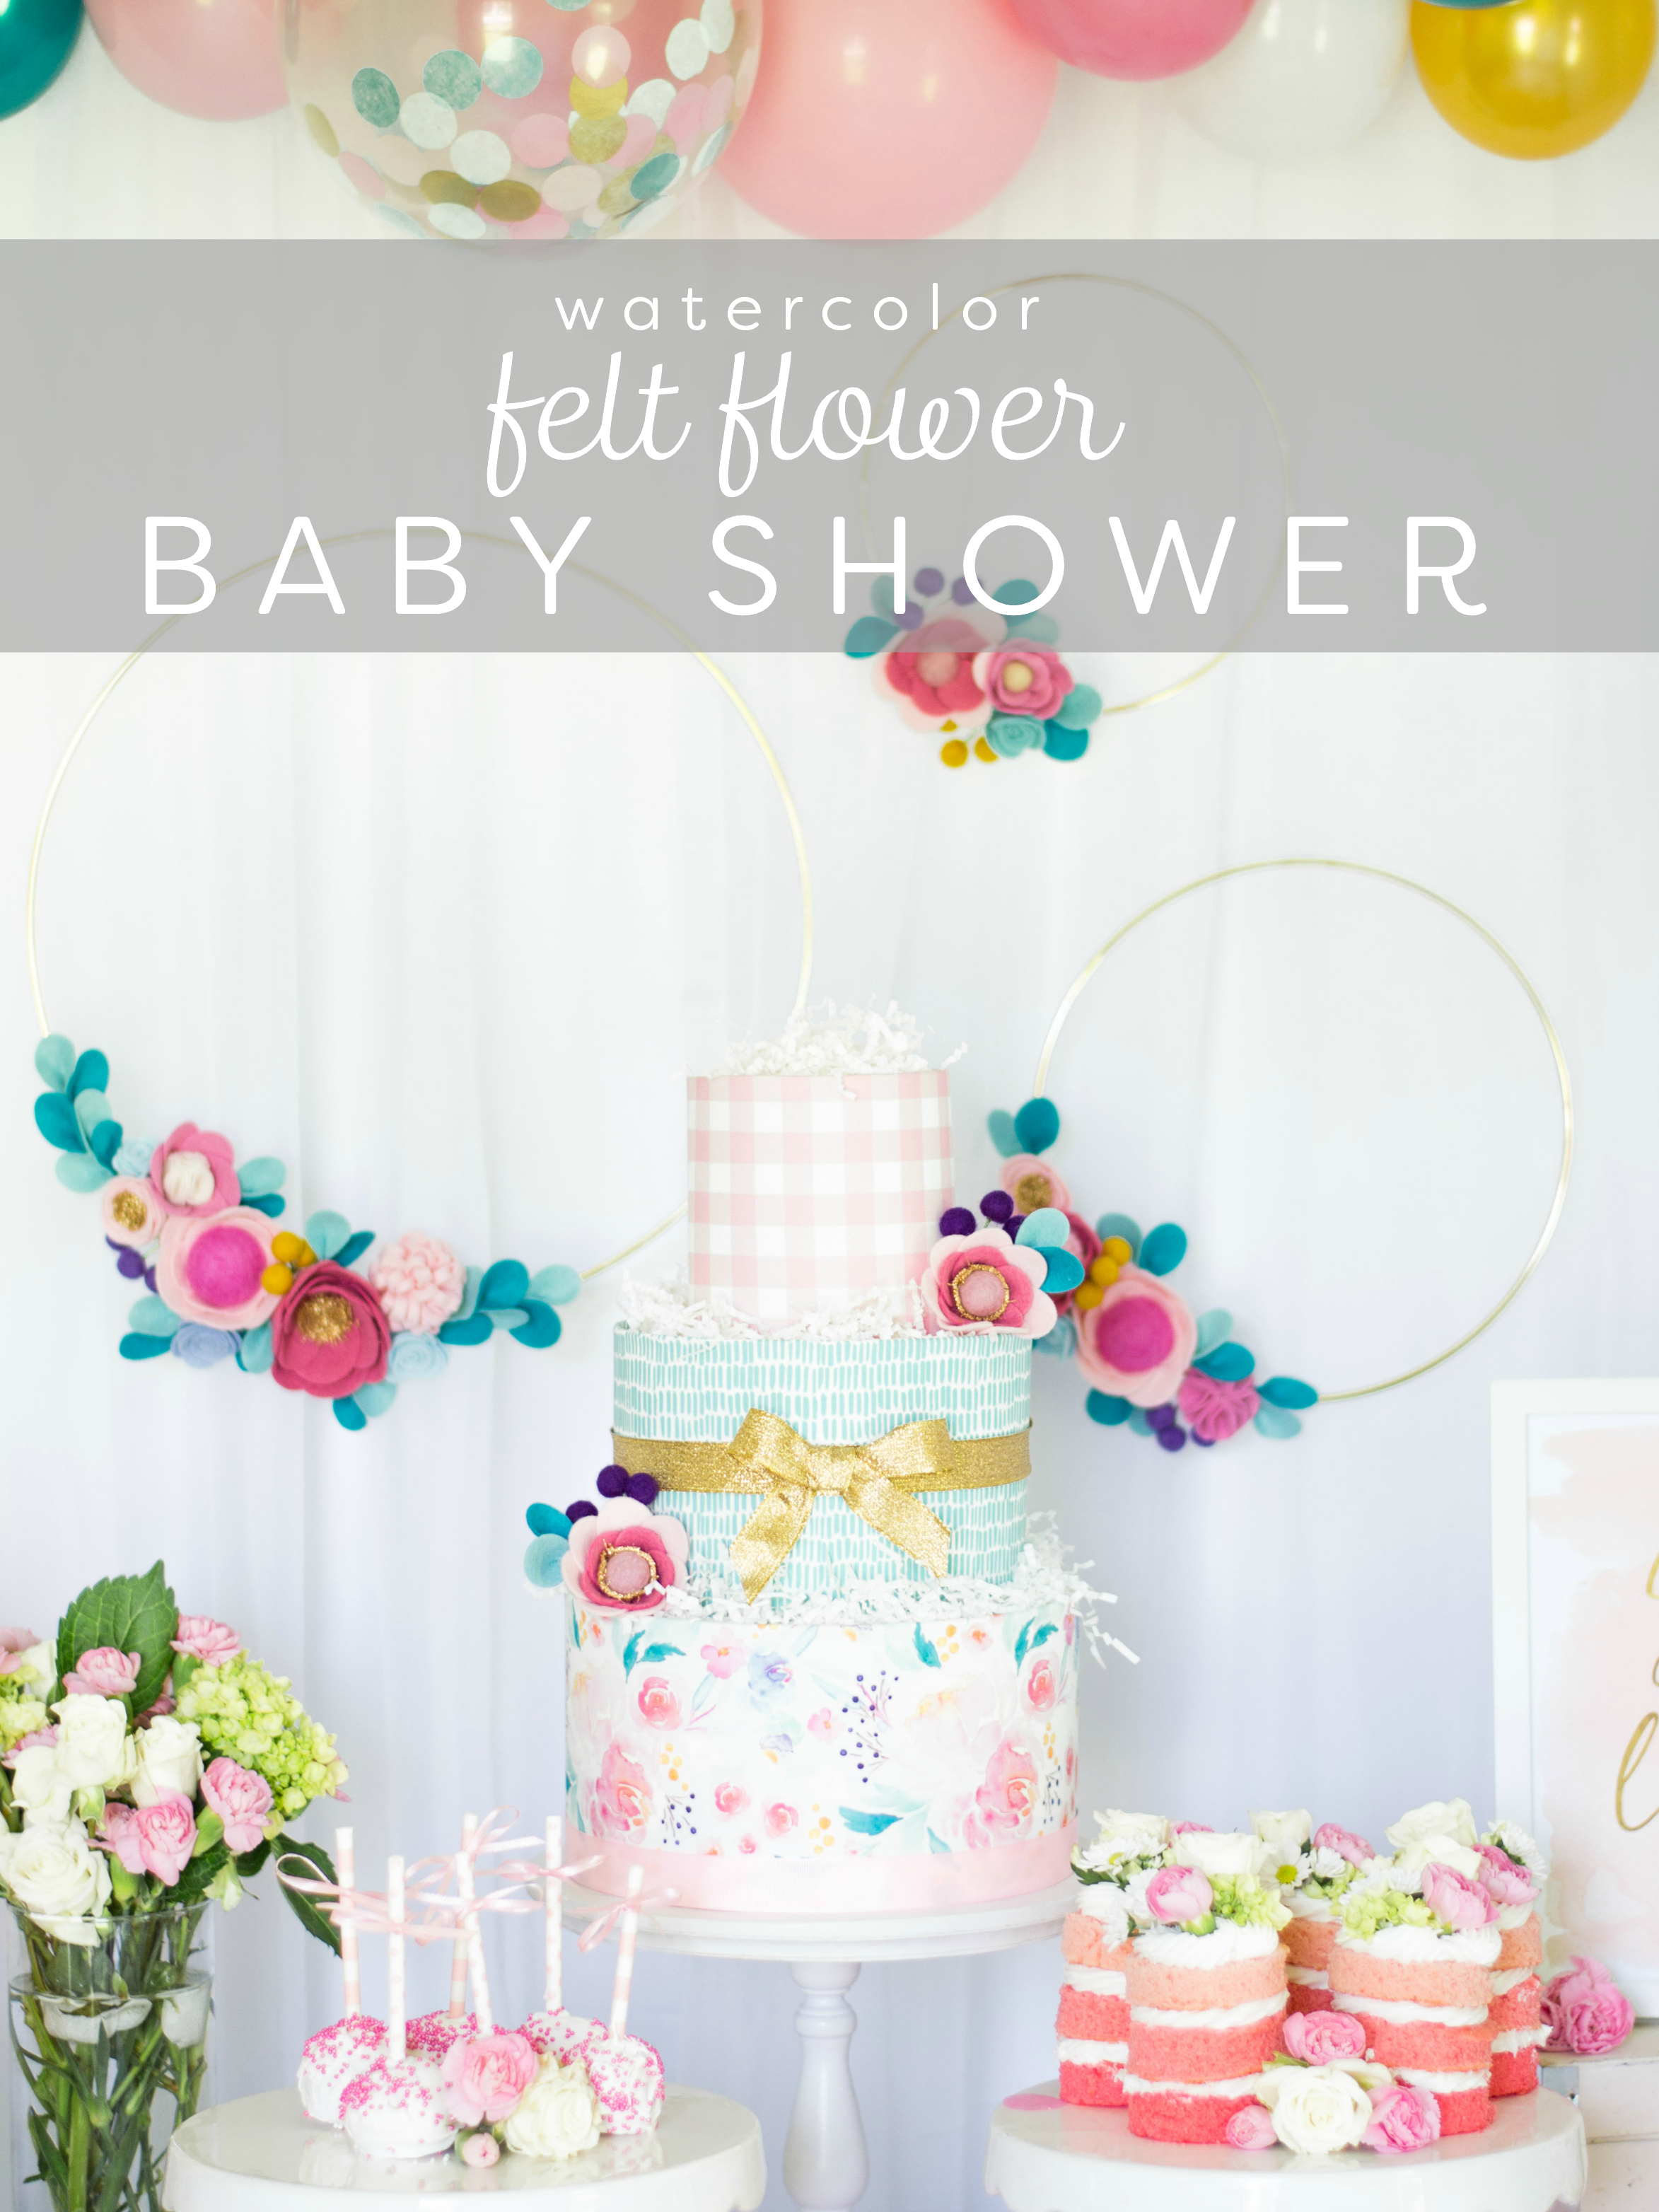 watercolor felt flower baby shower